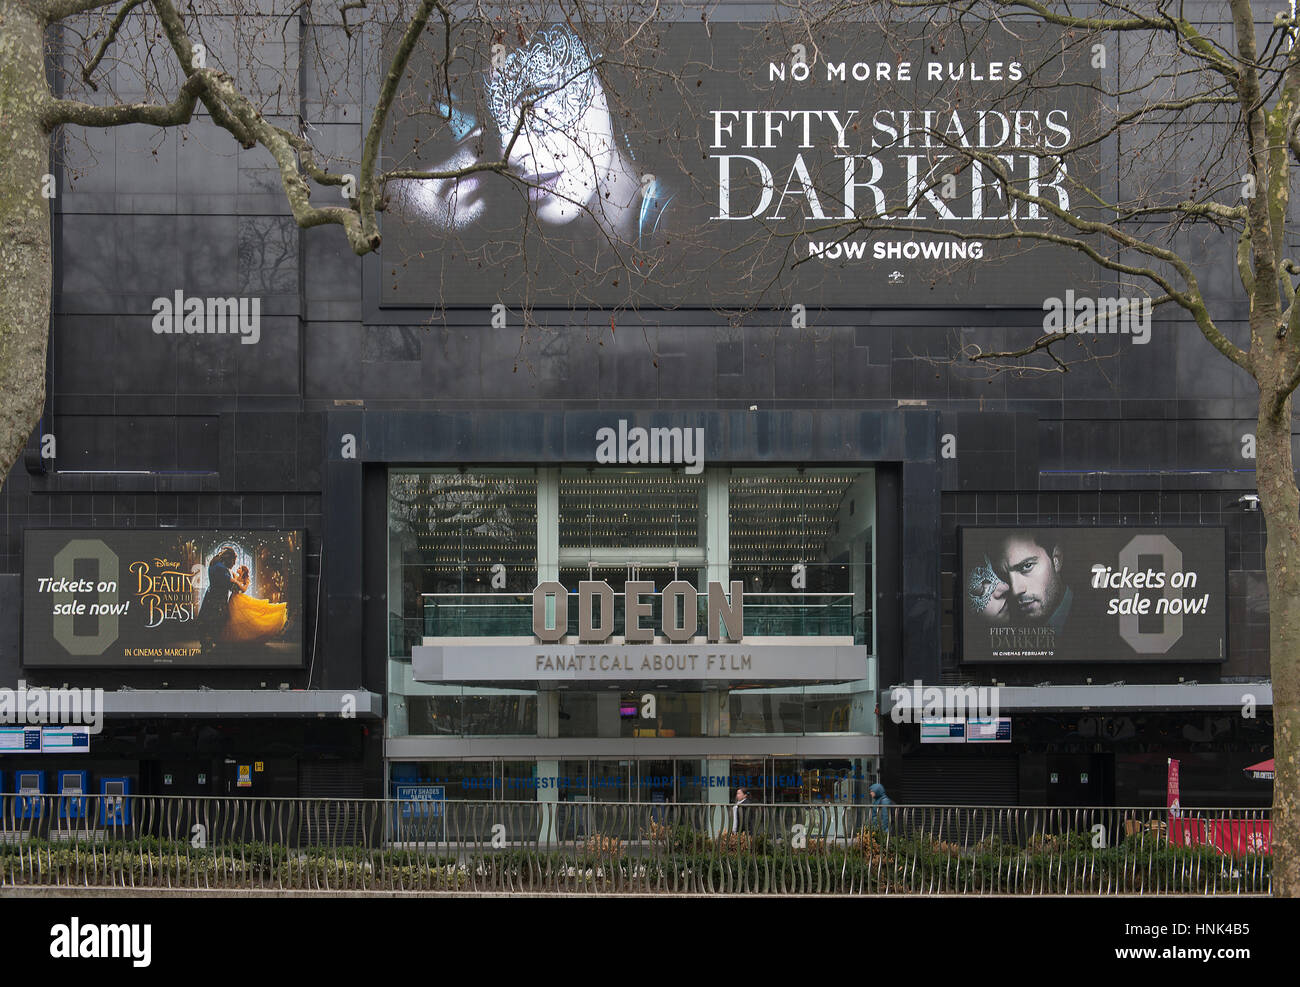 Odeon Leicester Square in London's West End on 14th February 2017 showing Fifty Shades Darker film. - Stock Image